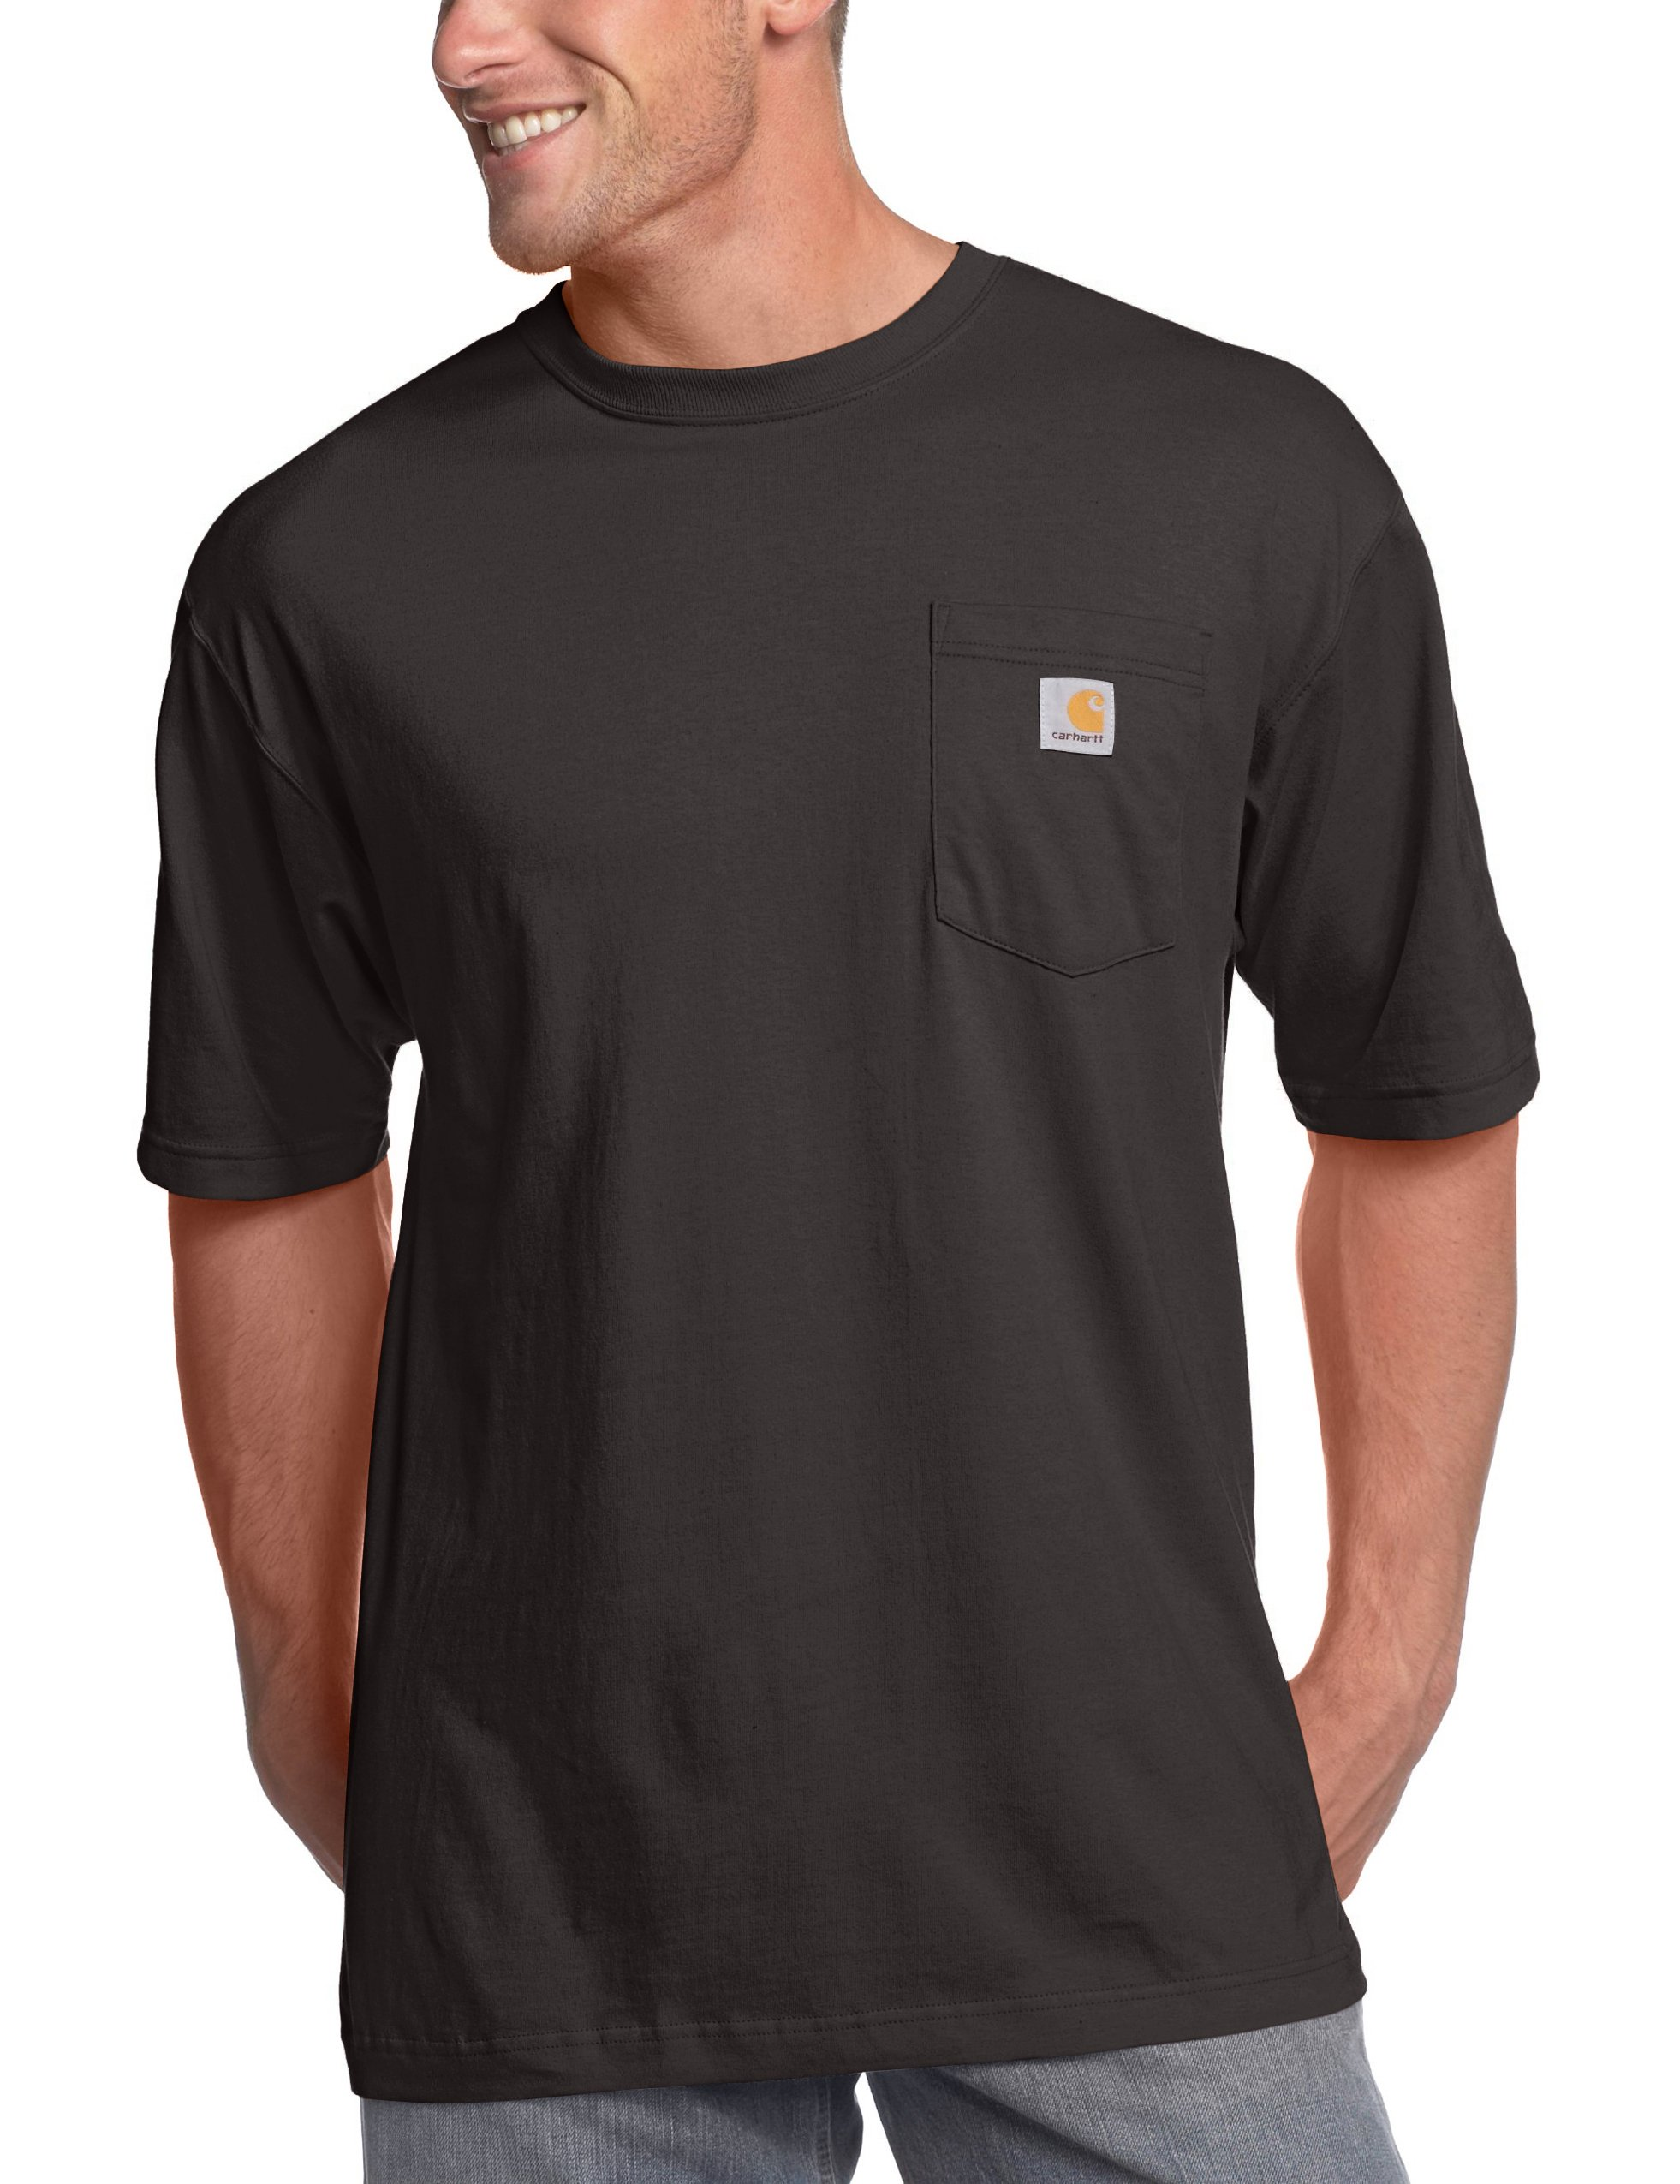 Carhartt Men's Big & Tall Workwear Pocket Short Sleeve T-Shirt Original Fit K87,Black,X-Large Tall